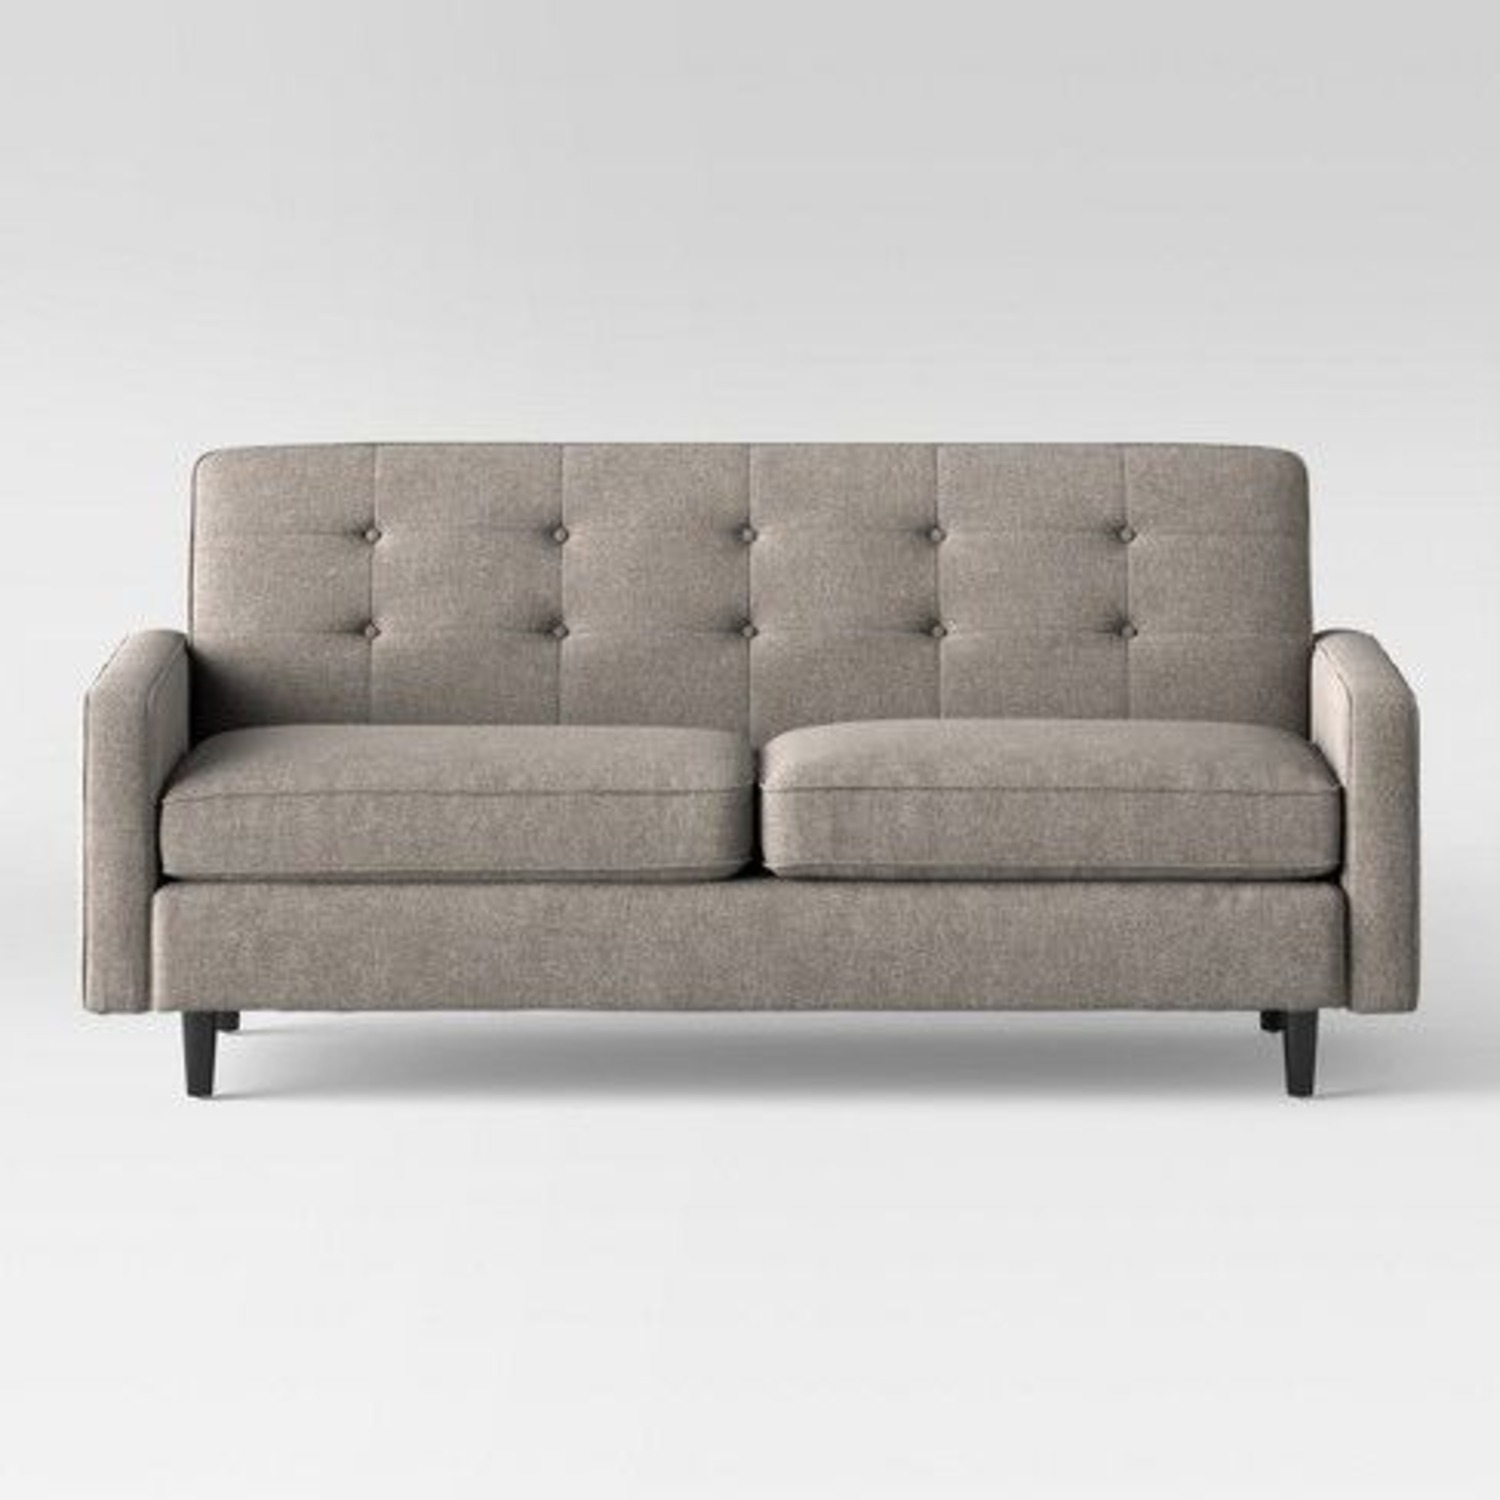 Target Largent Tufted Gray Couch - image-1